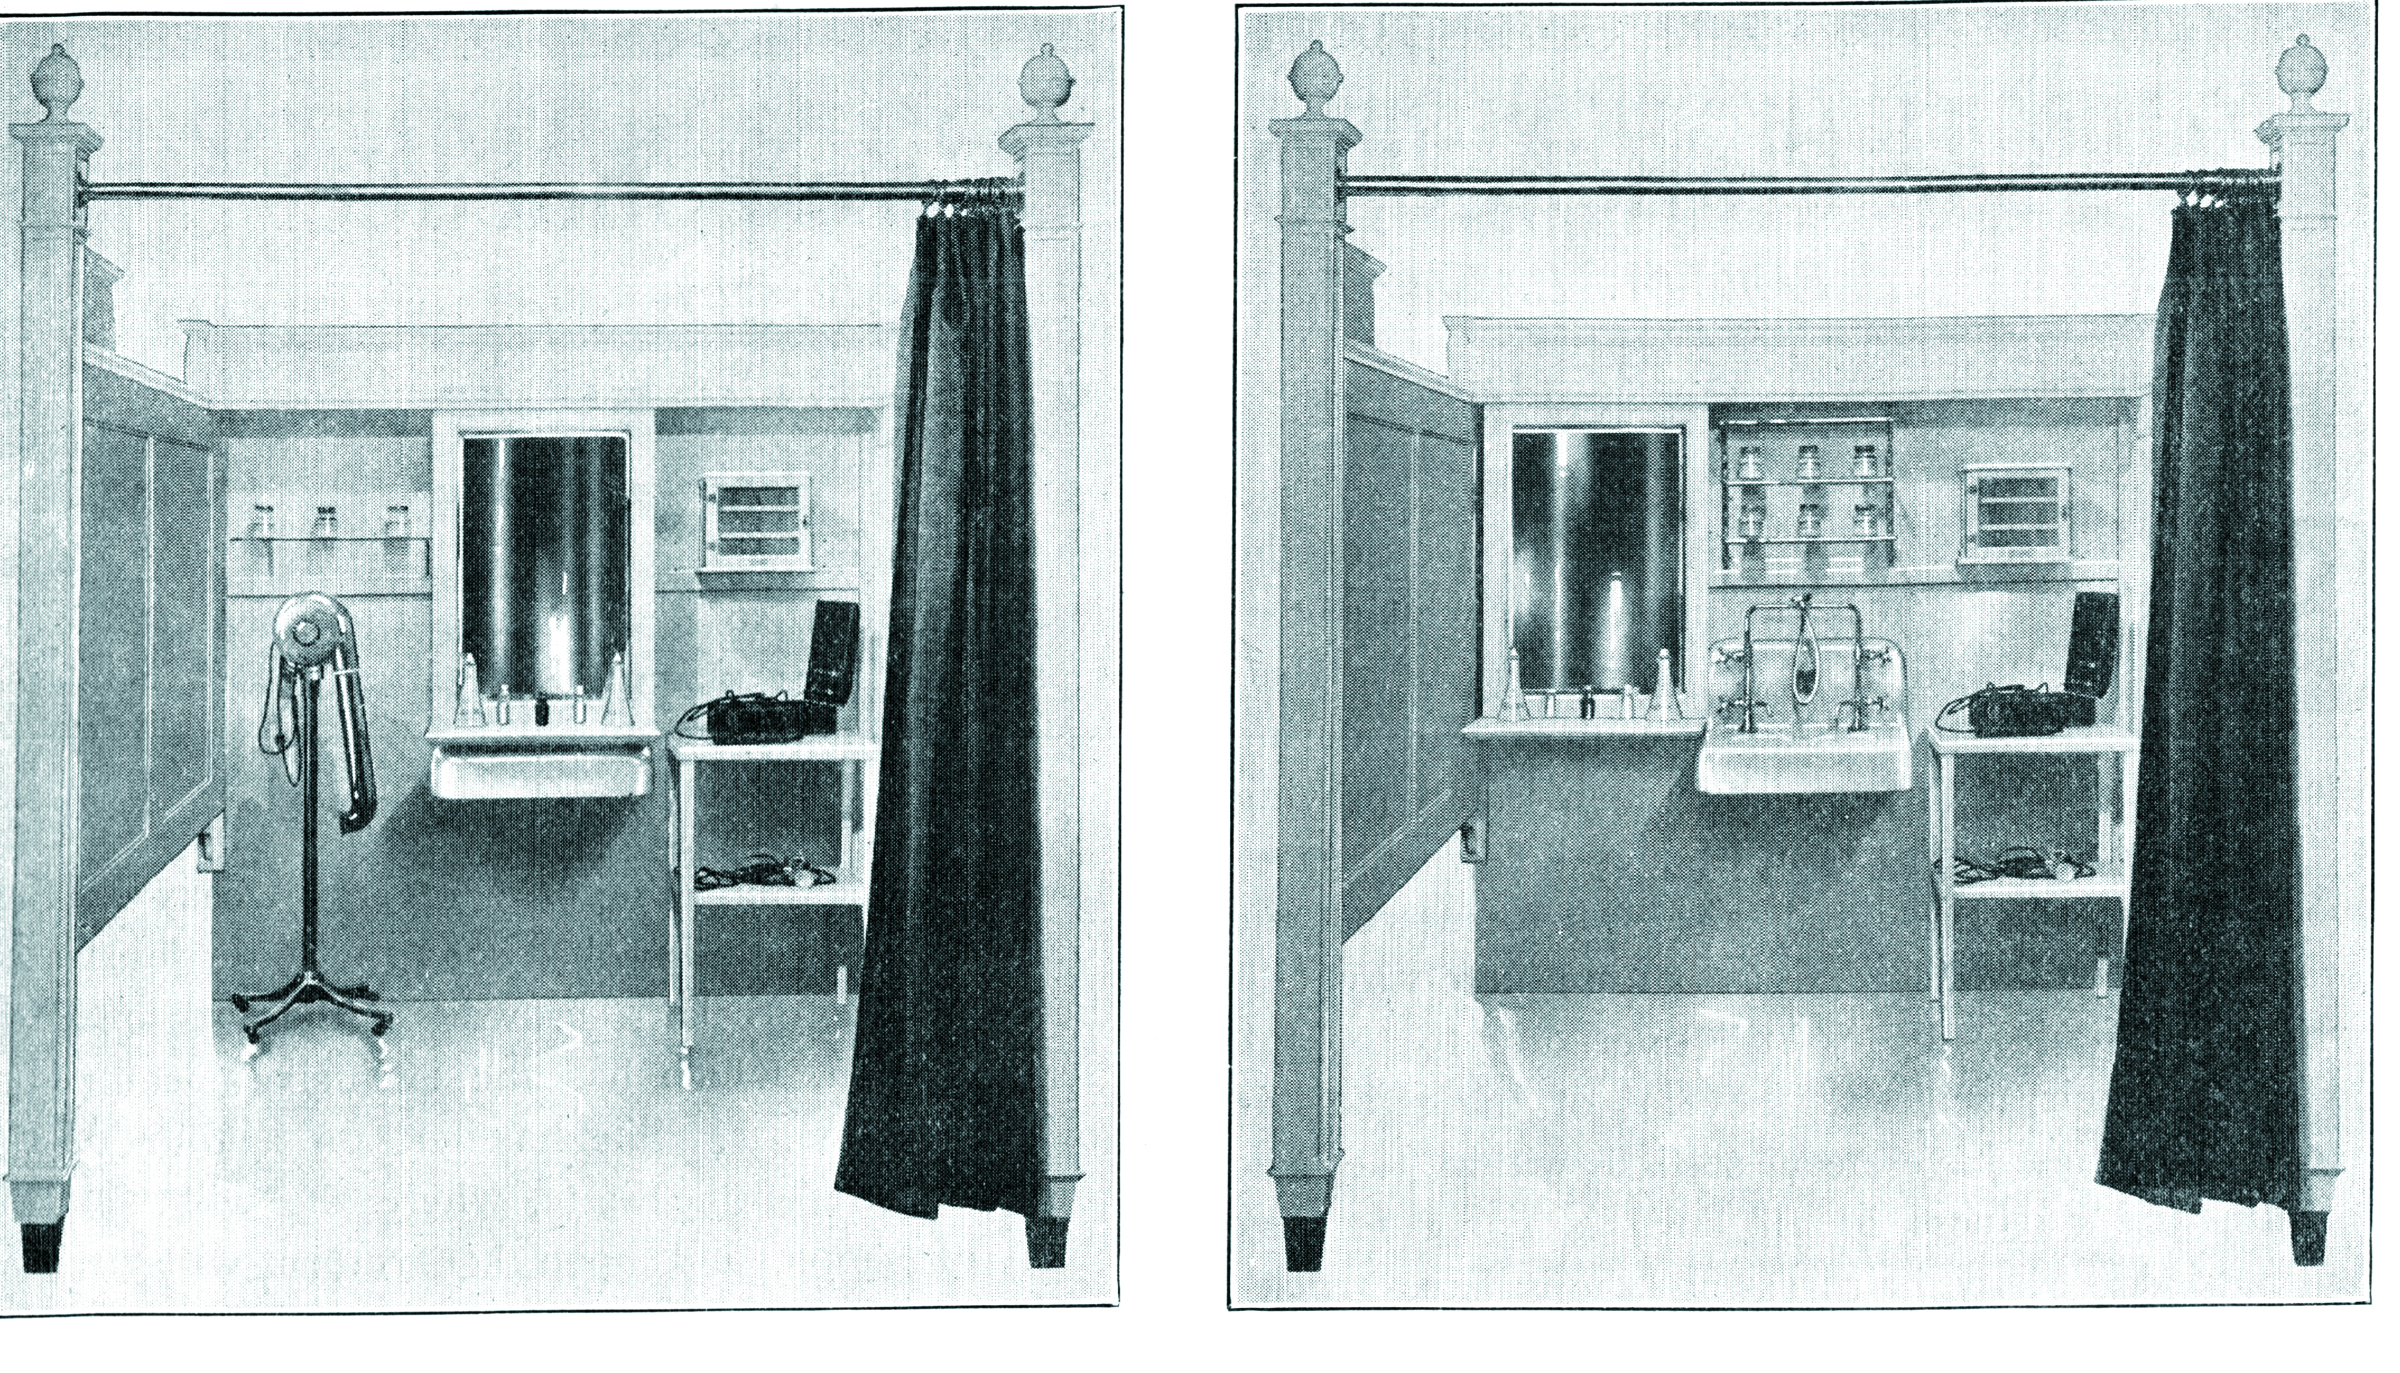 The sliding mirror construction allows the booth to convert from a hairdressing and massage area to a shampoo station.